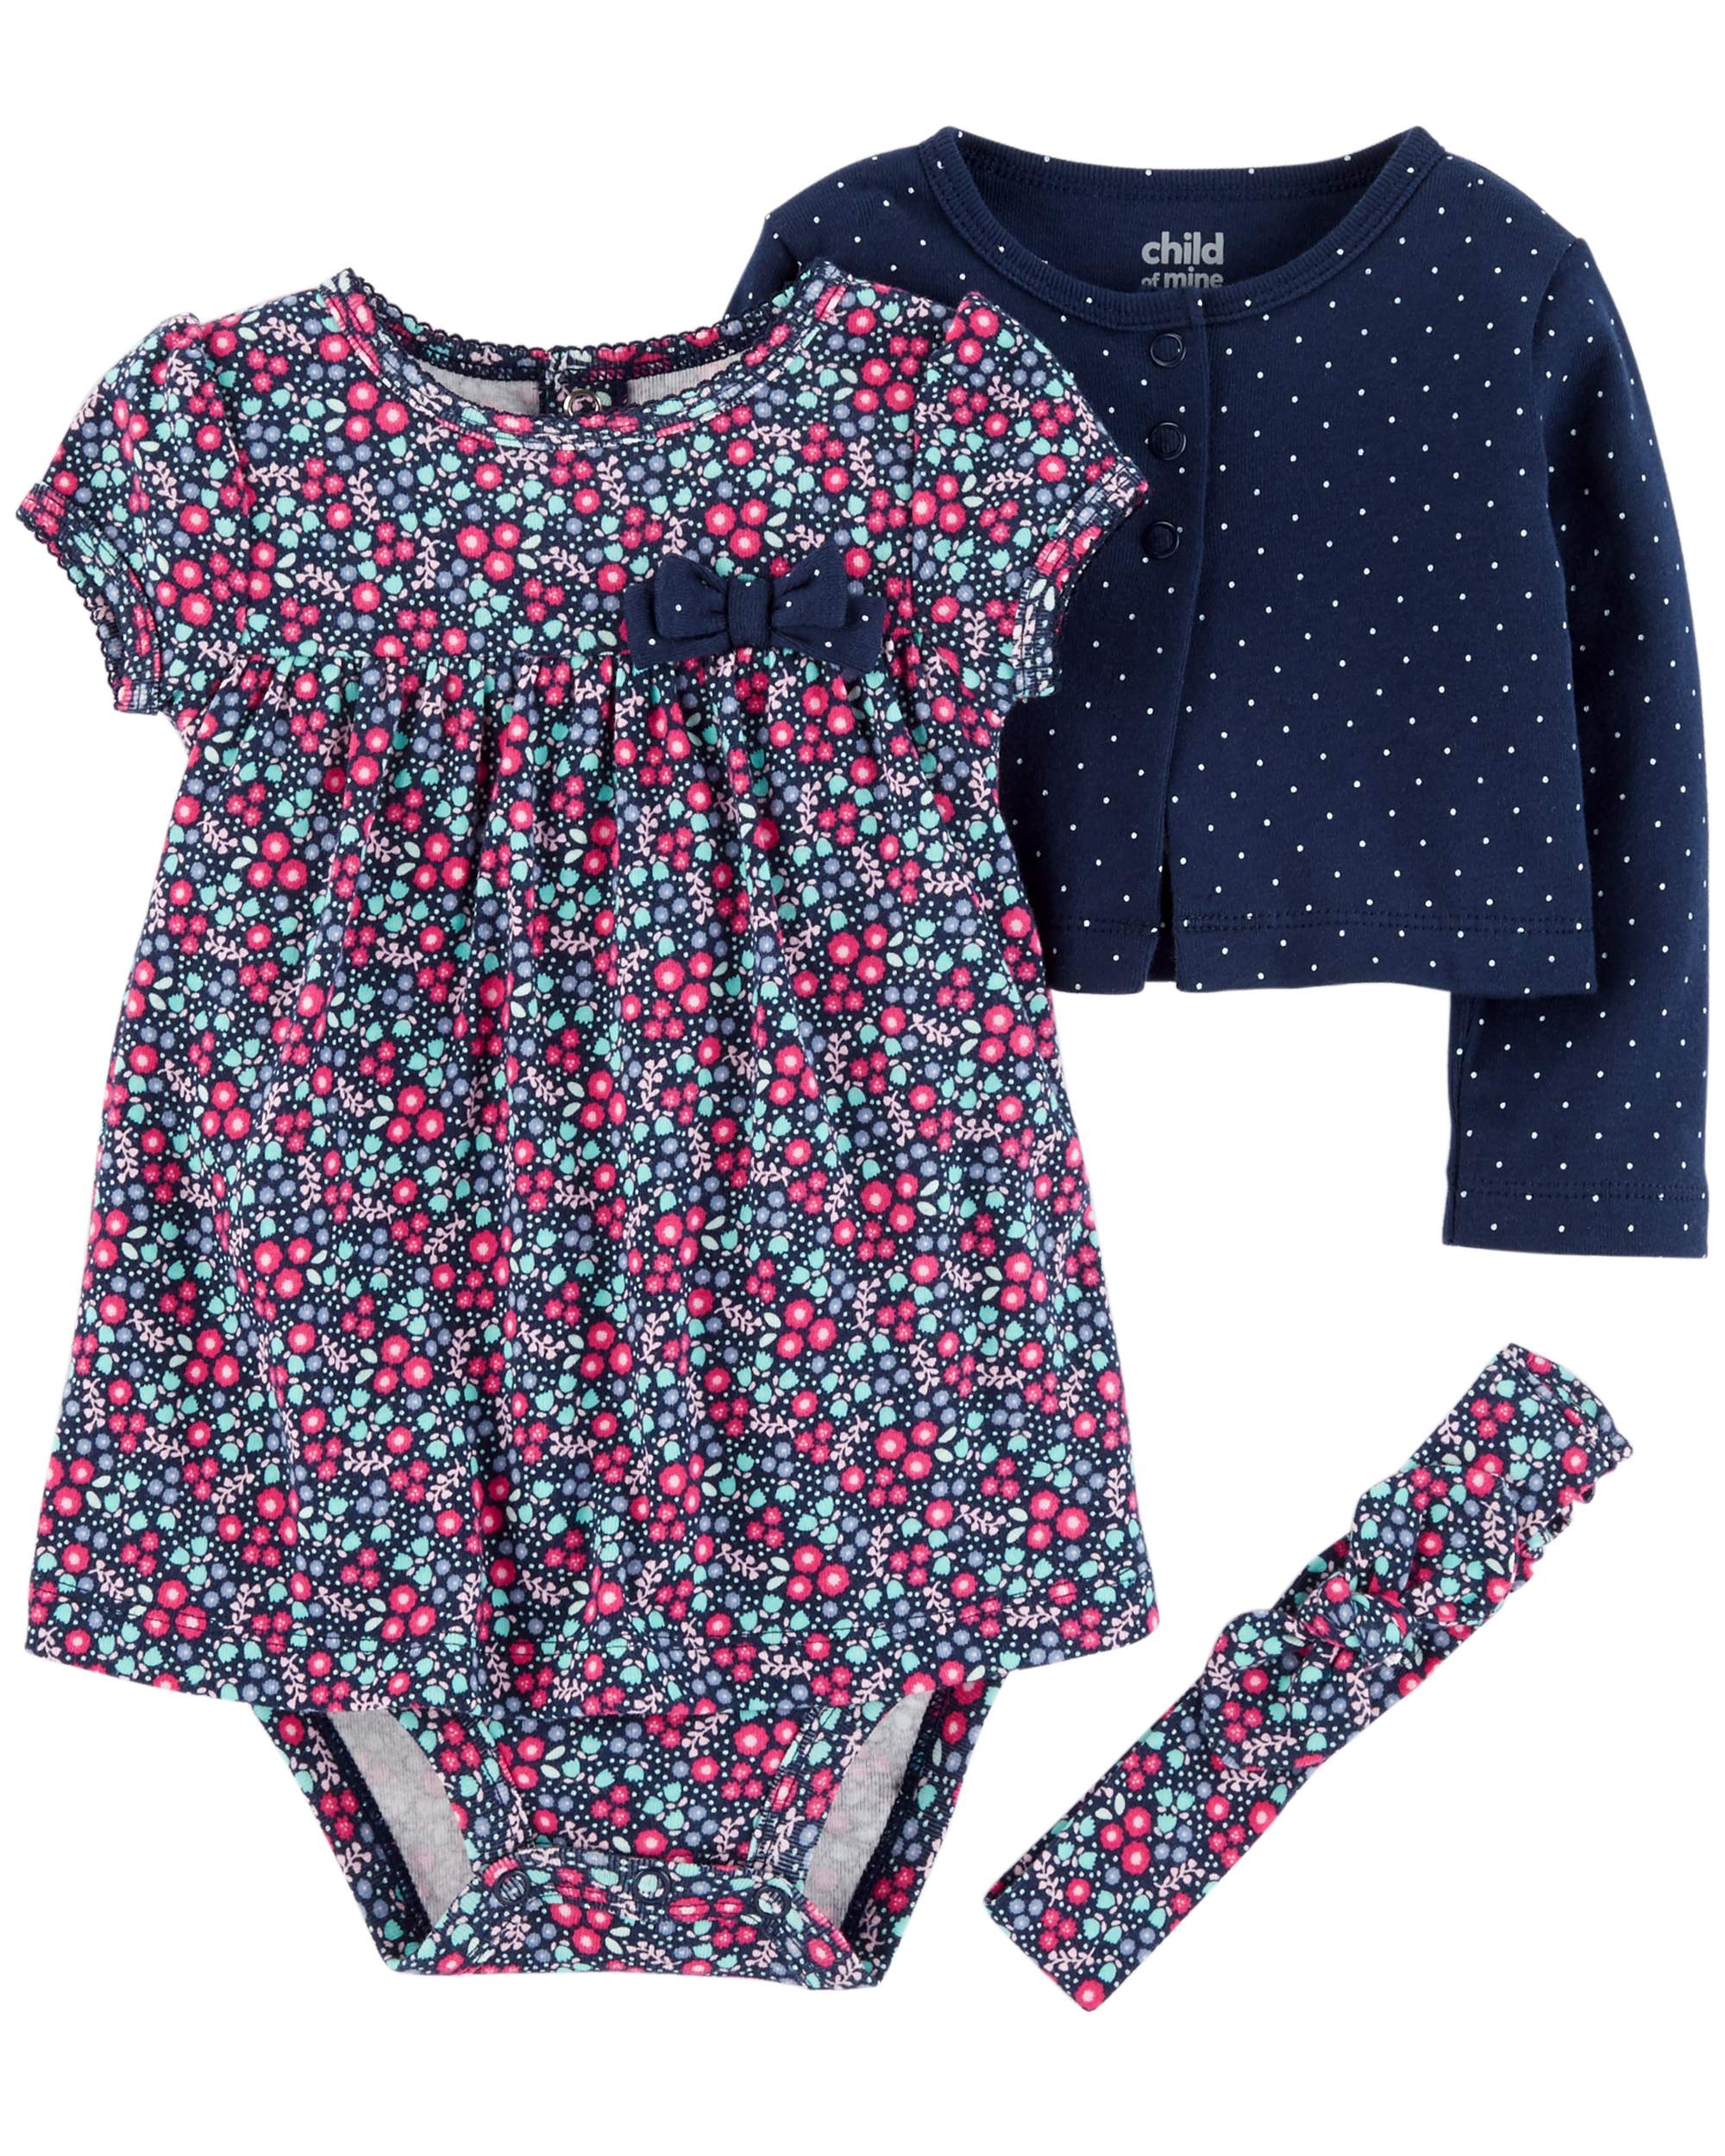 Long Sleeve Cardigan, Dress & Headband, 3pc Outfit Set (Baby Girls)